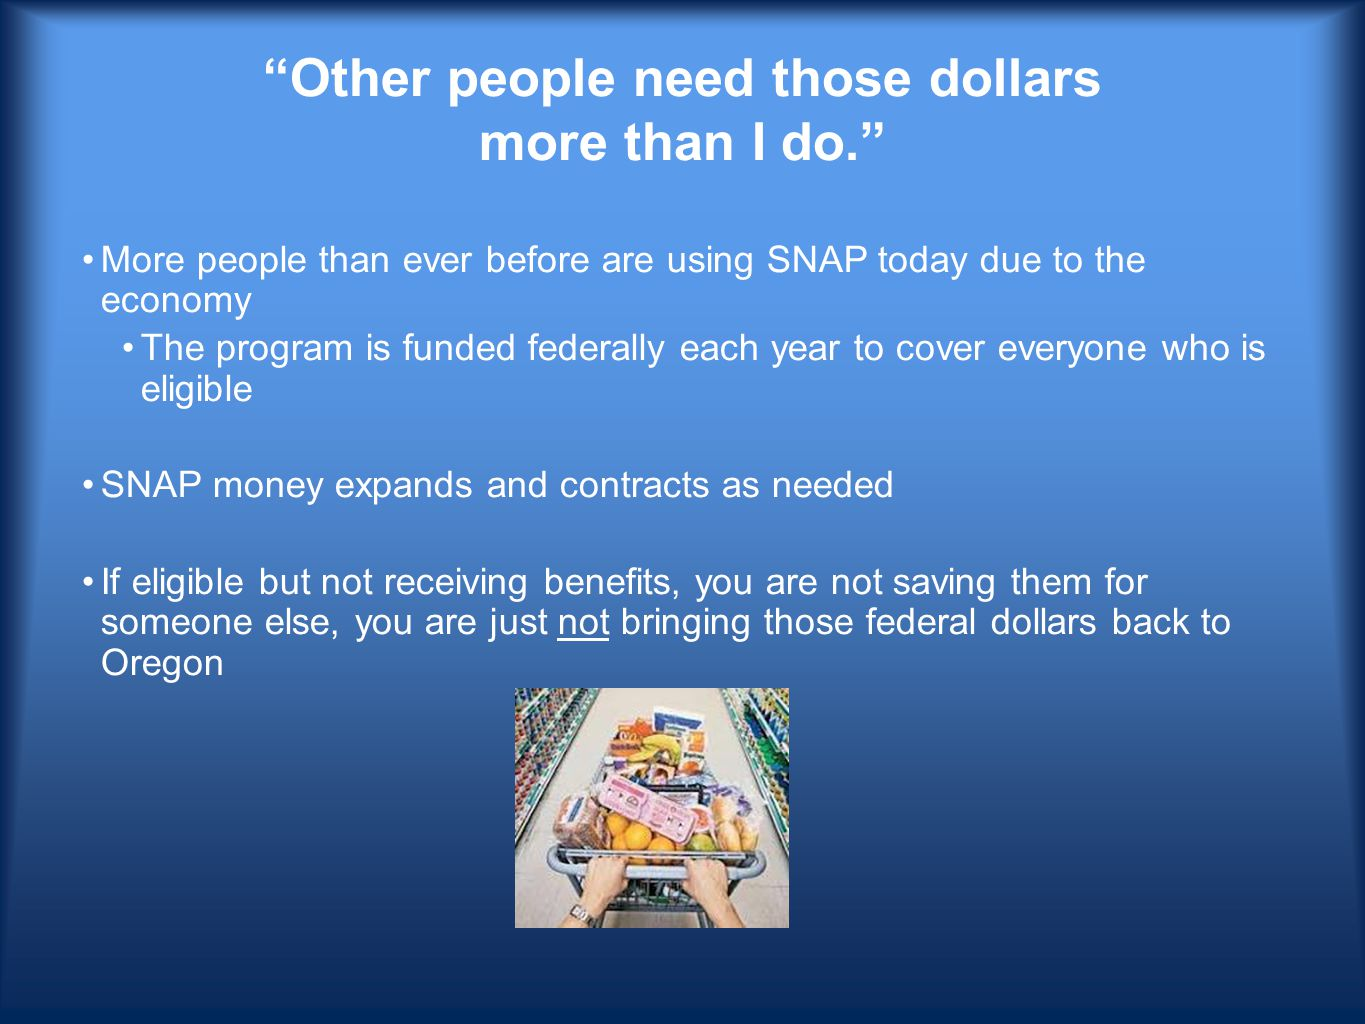 Other people need those dollars more than I do. More people than ever before are using SNAP today due to the economy The program is funded federally each year to cover everyone who is eligible SNAP money expands and contracts as needed If eligible but not receiving benefits, you are not saving them for someone else, you are just not bringing those federal dollars back to Oregon